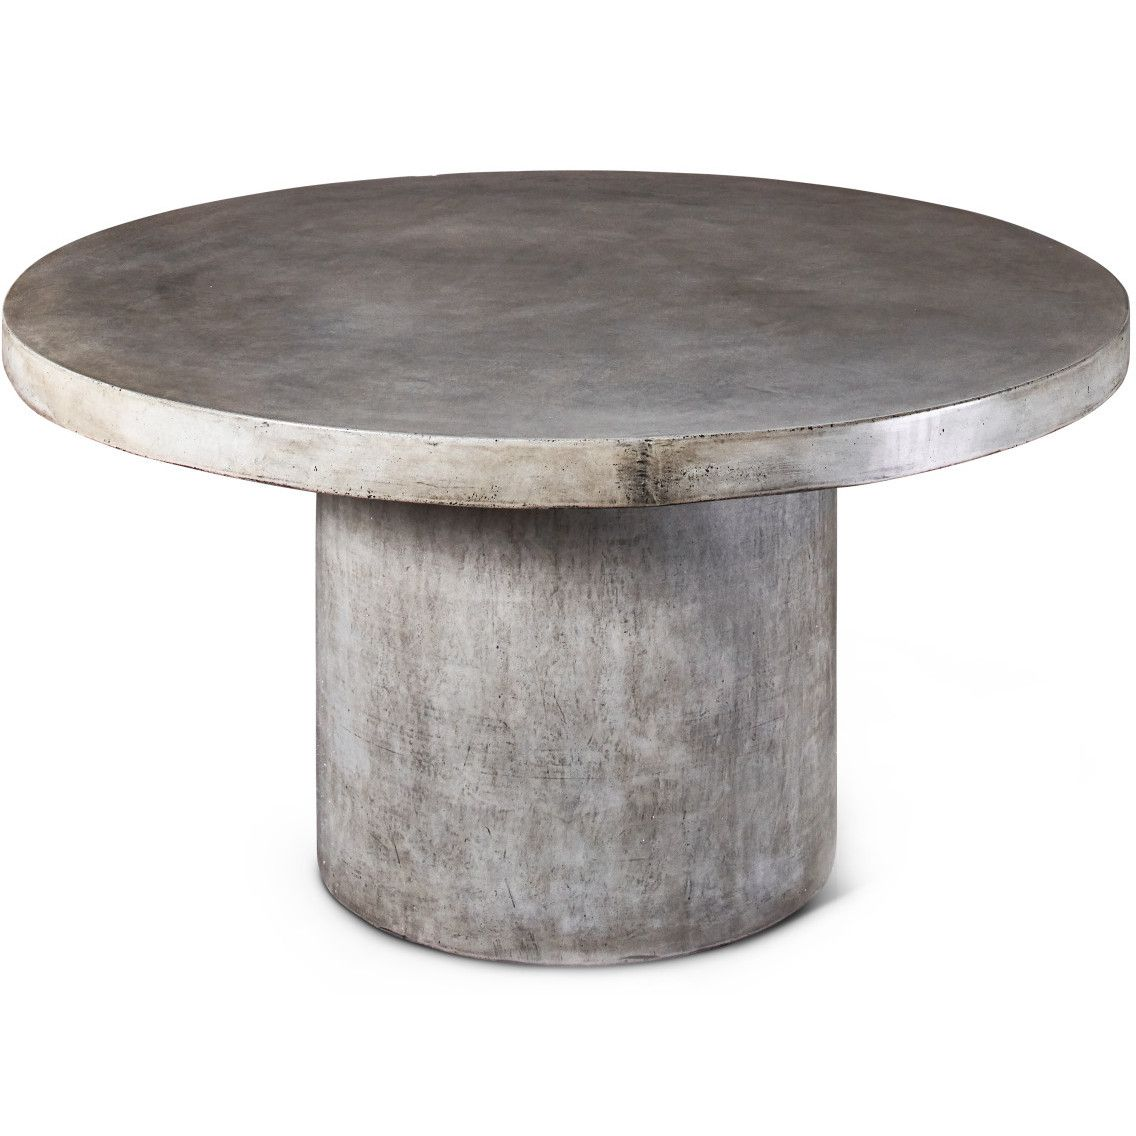 Round Concrete Dining Table HomettyJig Pinterest Concrete - Concrete pedestal dining table